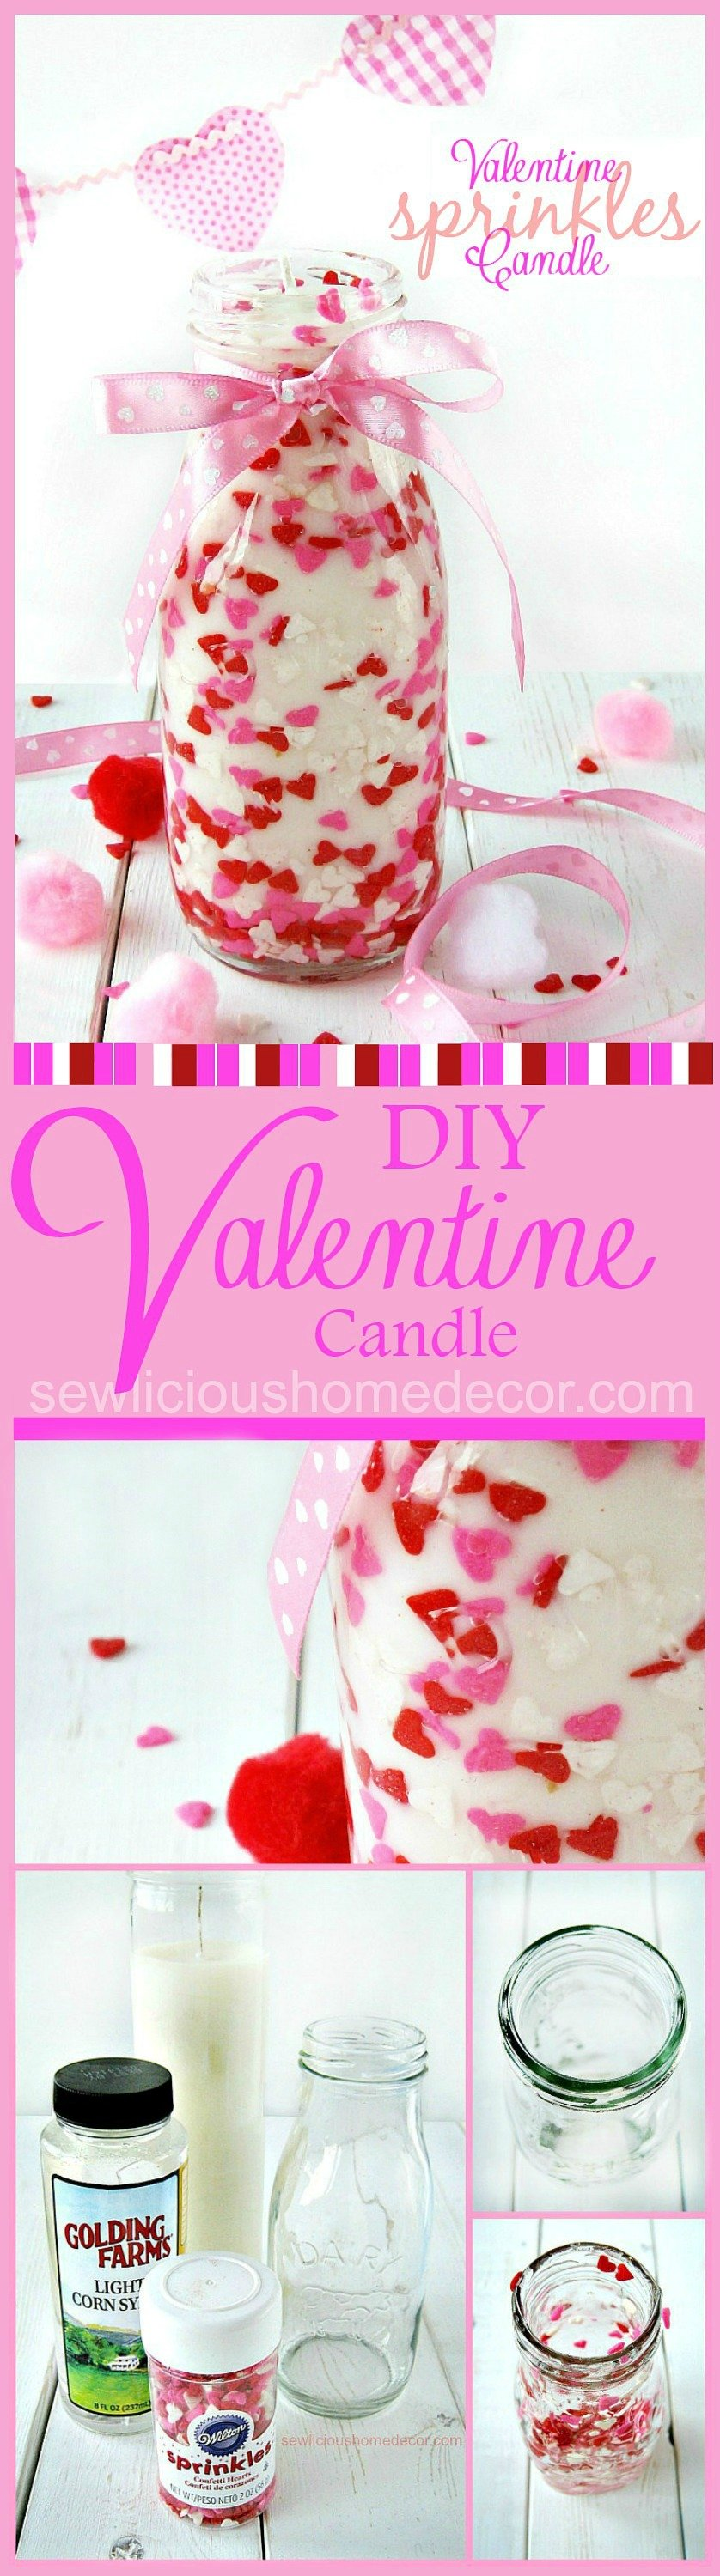 Valentine Sprinkles Candle Tutorial Pinterest